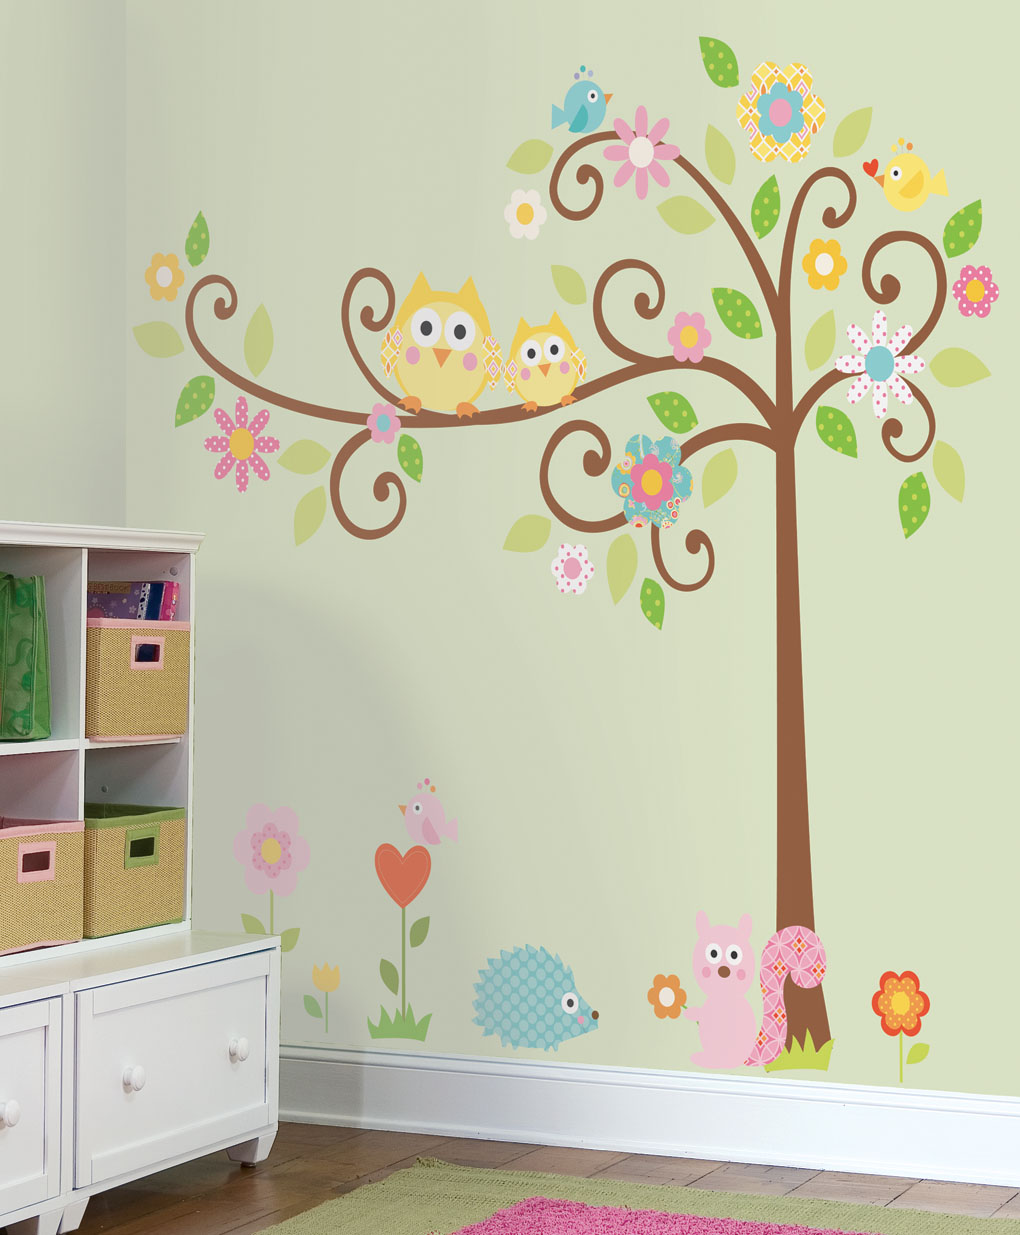 Wall Decals Kids | Art Wall Decor